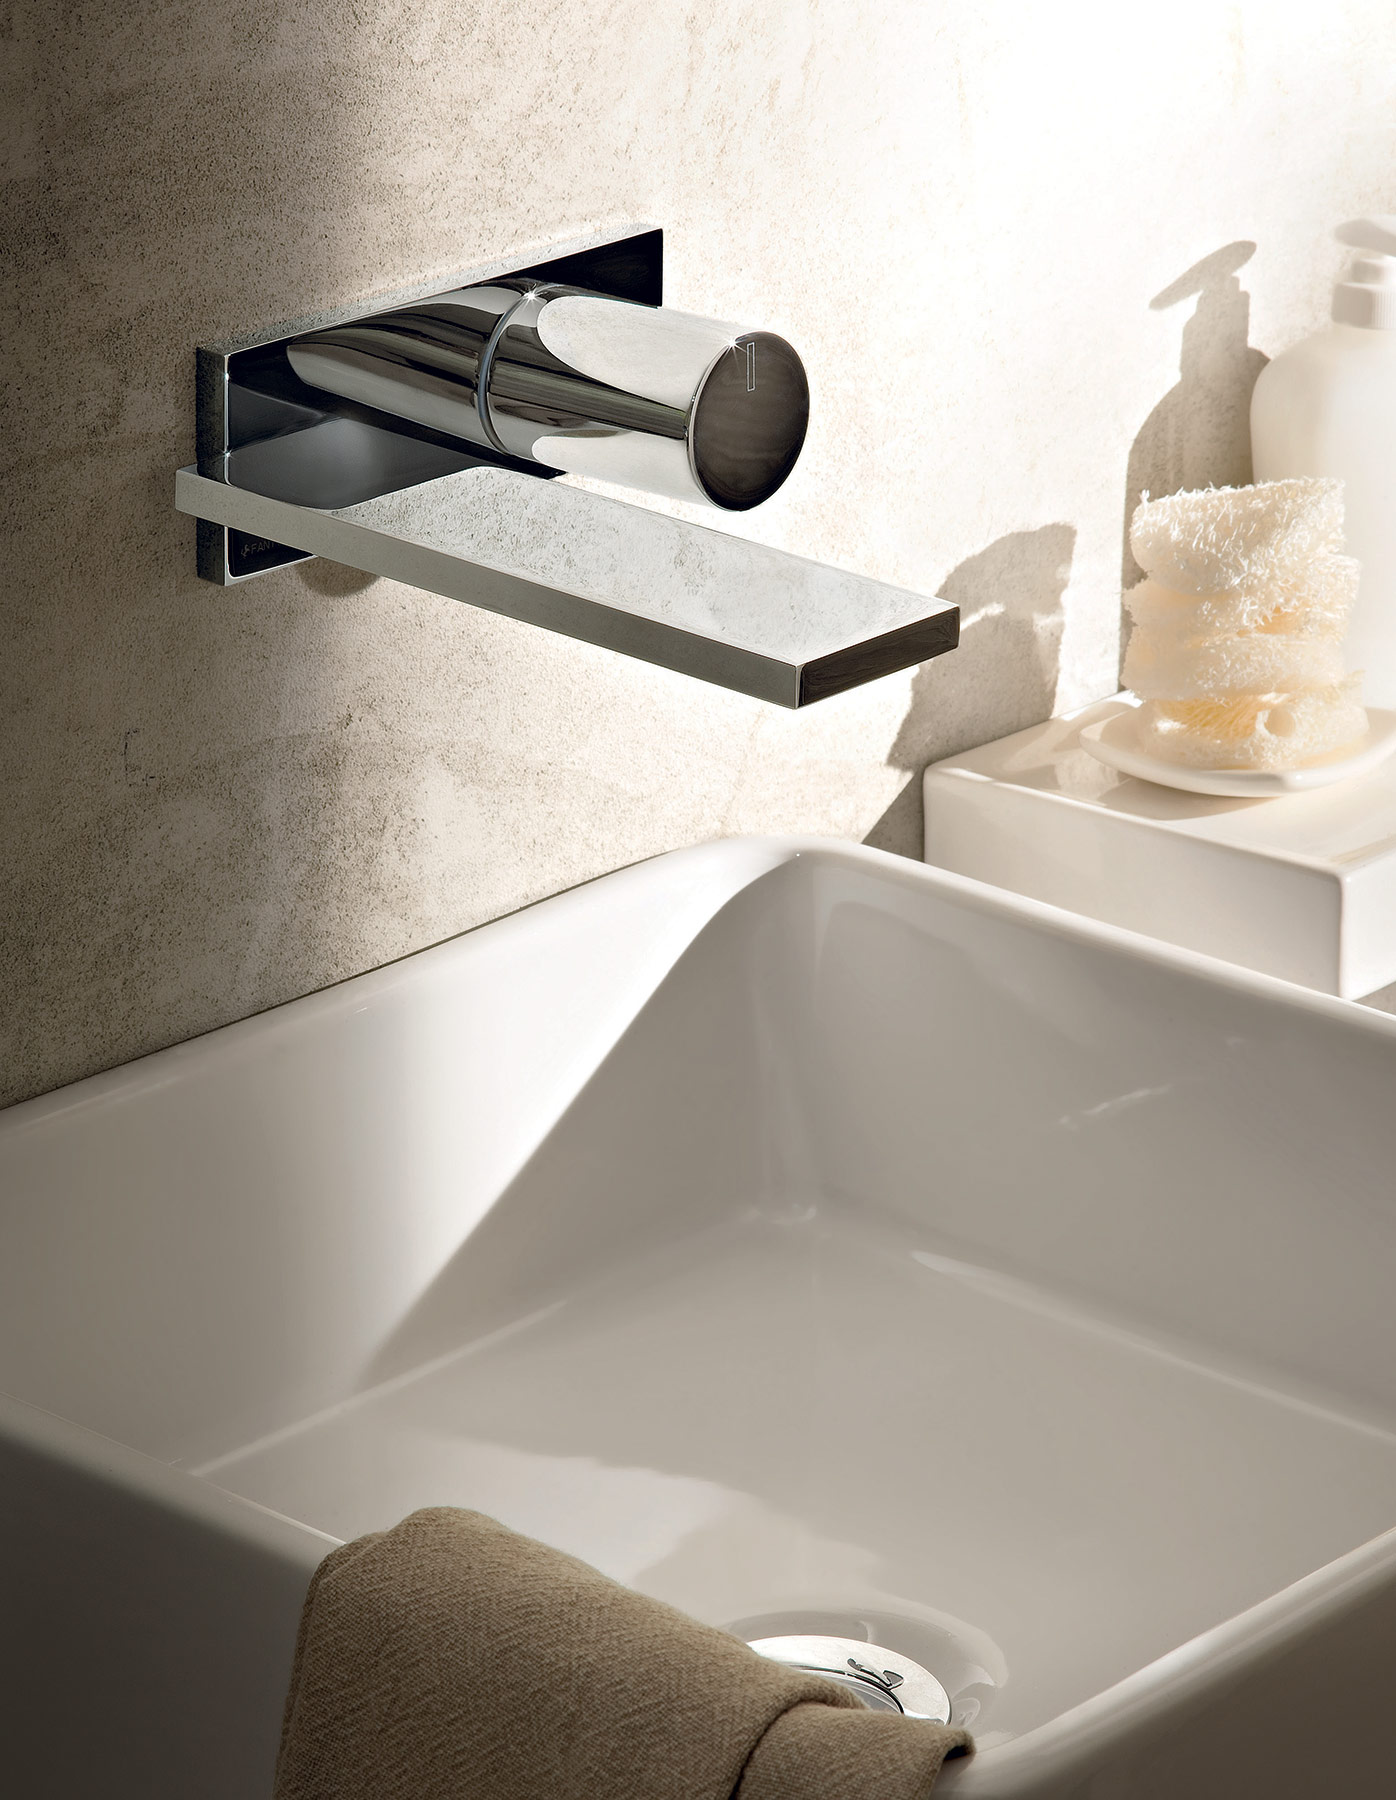 construction and in concealed contemporary brass filler on l the nickel control faucetupdate stylish rotunda design faucets vessel this spout your basin single waterfall fit full sink pagosa of size hole brushed simple with features wall faucet mount bathroom is modern for beauty satin perfect